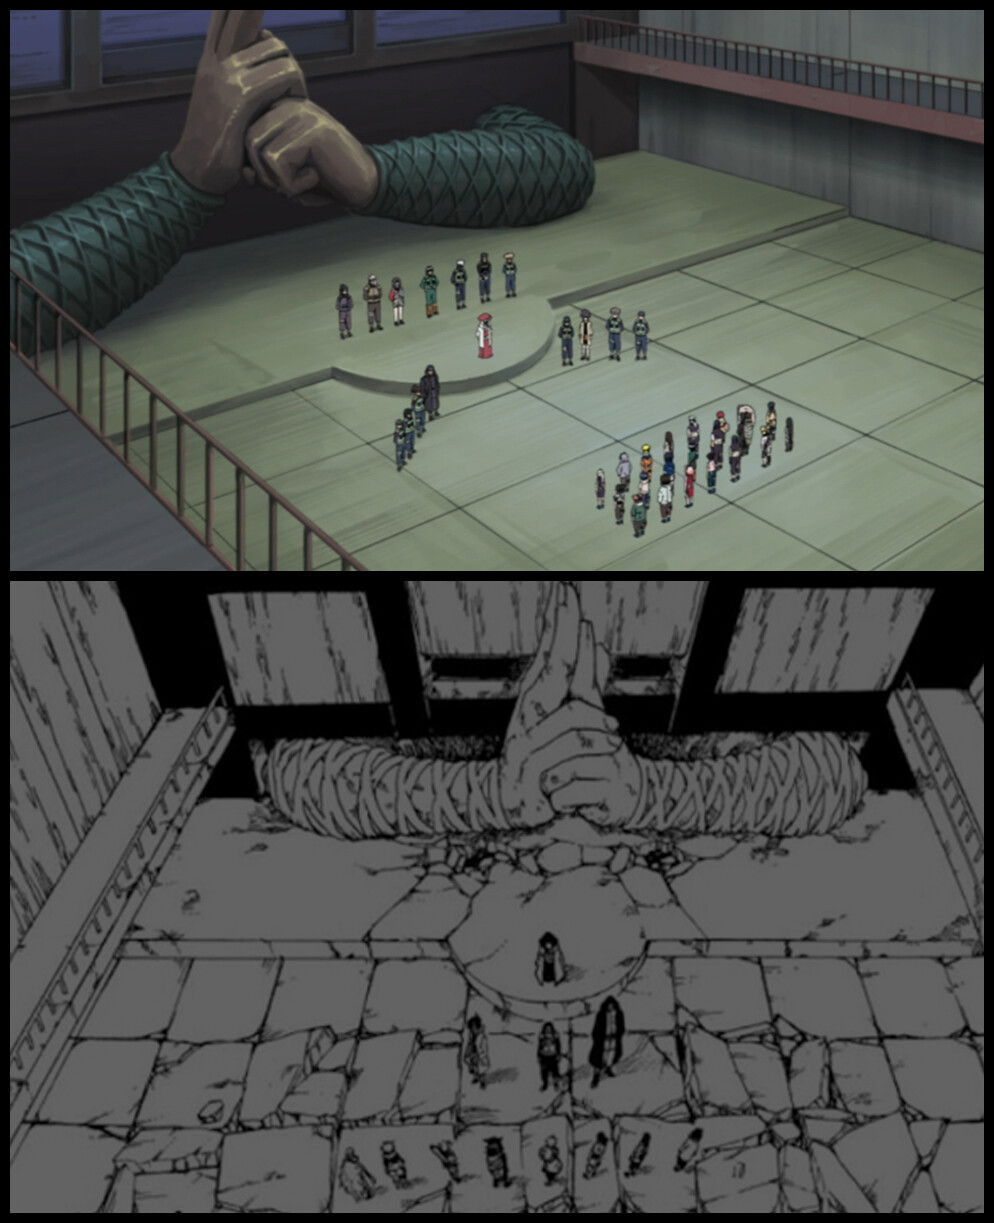 Original Manga & Anime Reference for Chunin Exam Room  All credit to author Masashi Kishimoto & staff for such an amazing anime/manga that has been such a huge part of my life <3 ________________________________